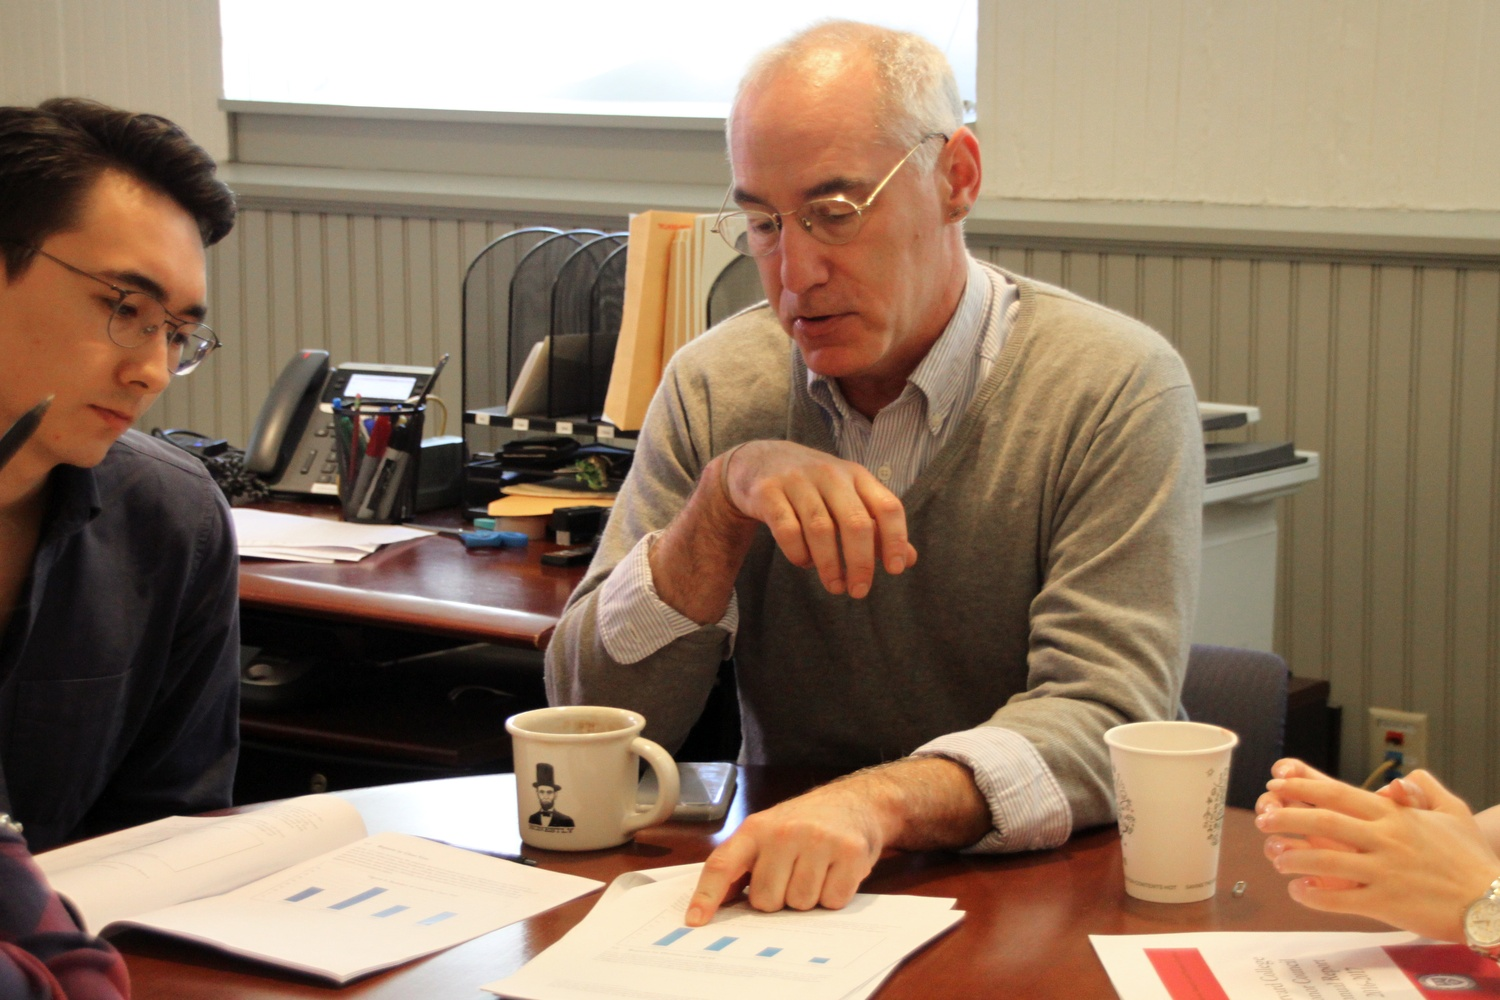 Brett Flehinger, Harvard College's associate dean for academic integrity and student conduct, pictured here in 2017.